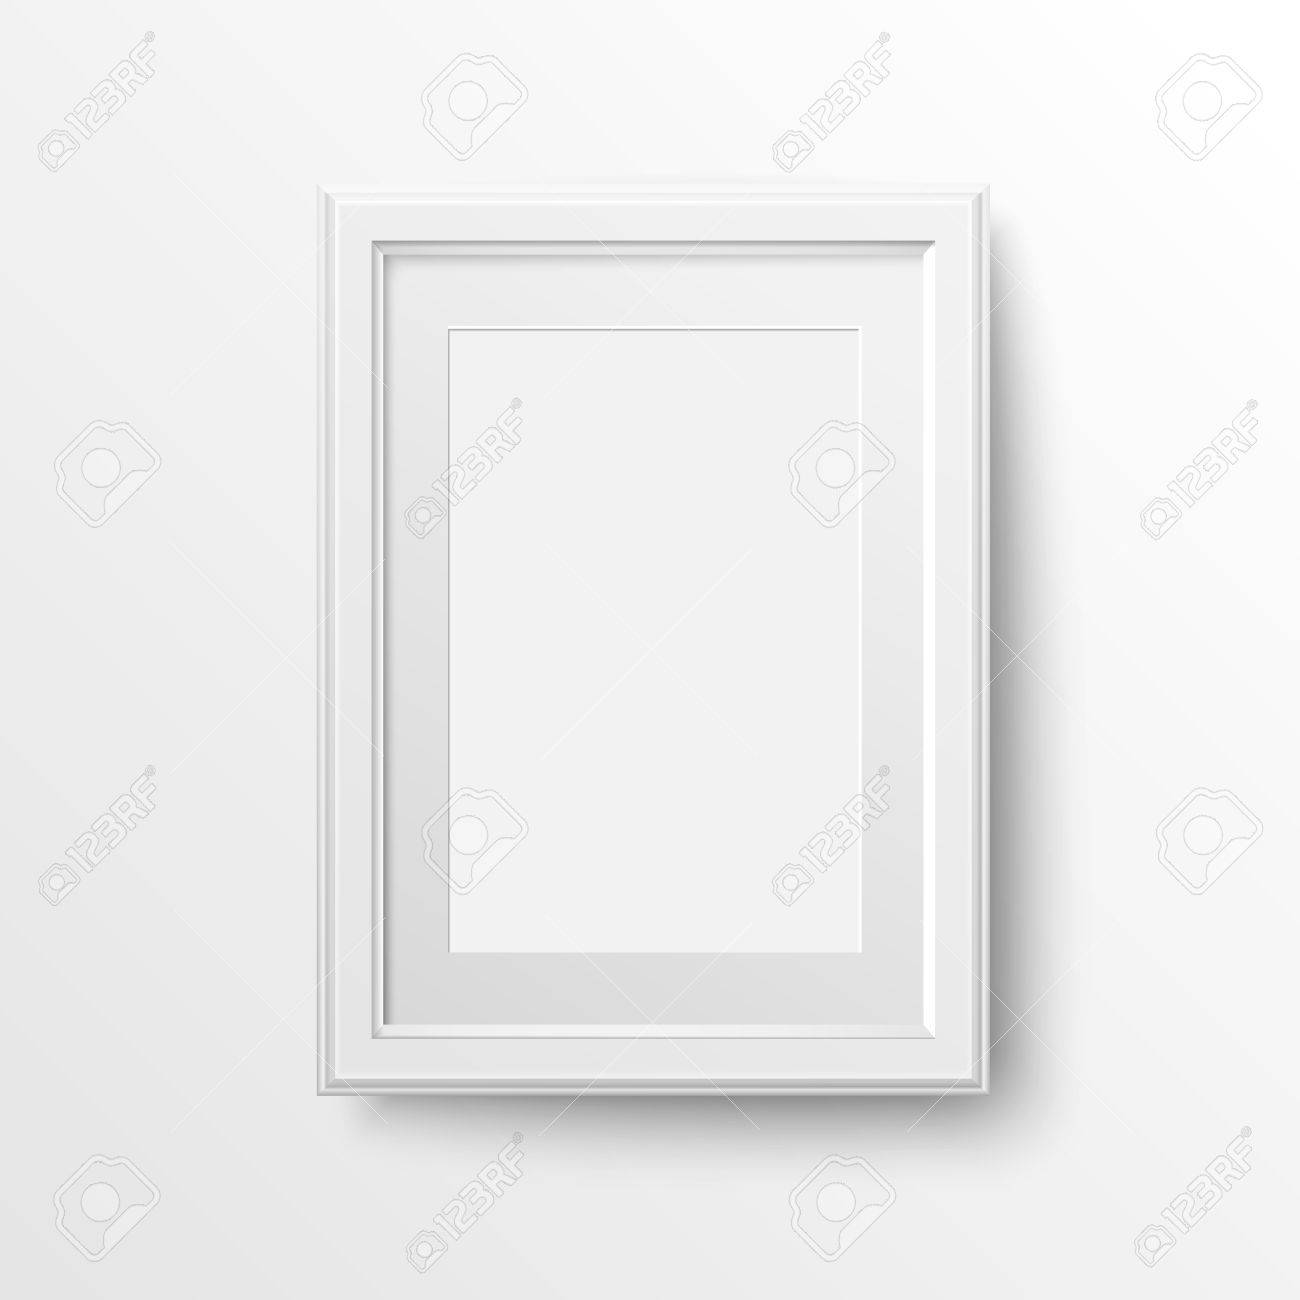 Foto Passepartout A3 And A4 Vertical Blank Picture Frame With Passepartout For